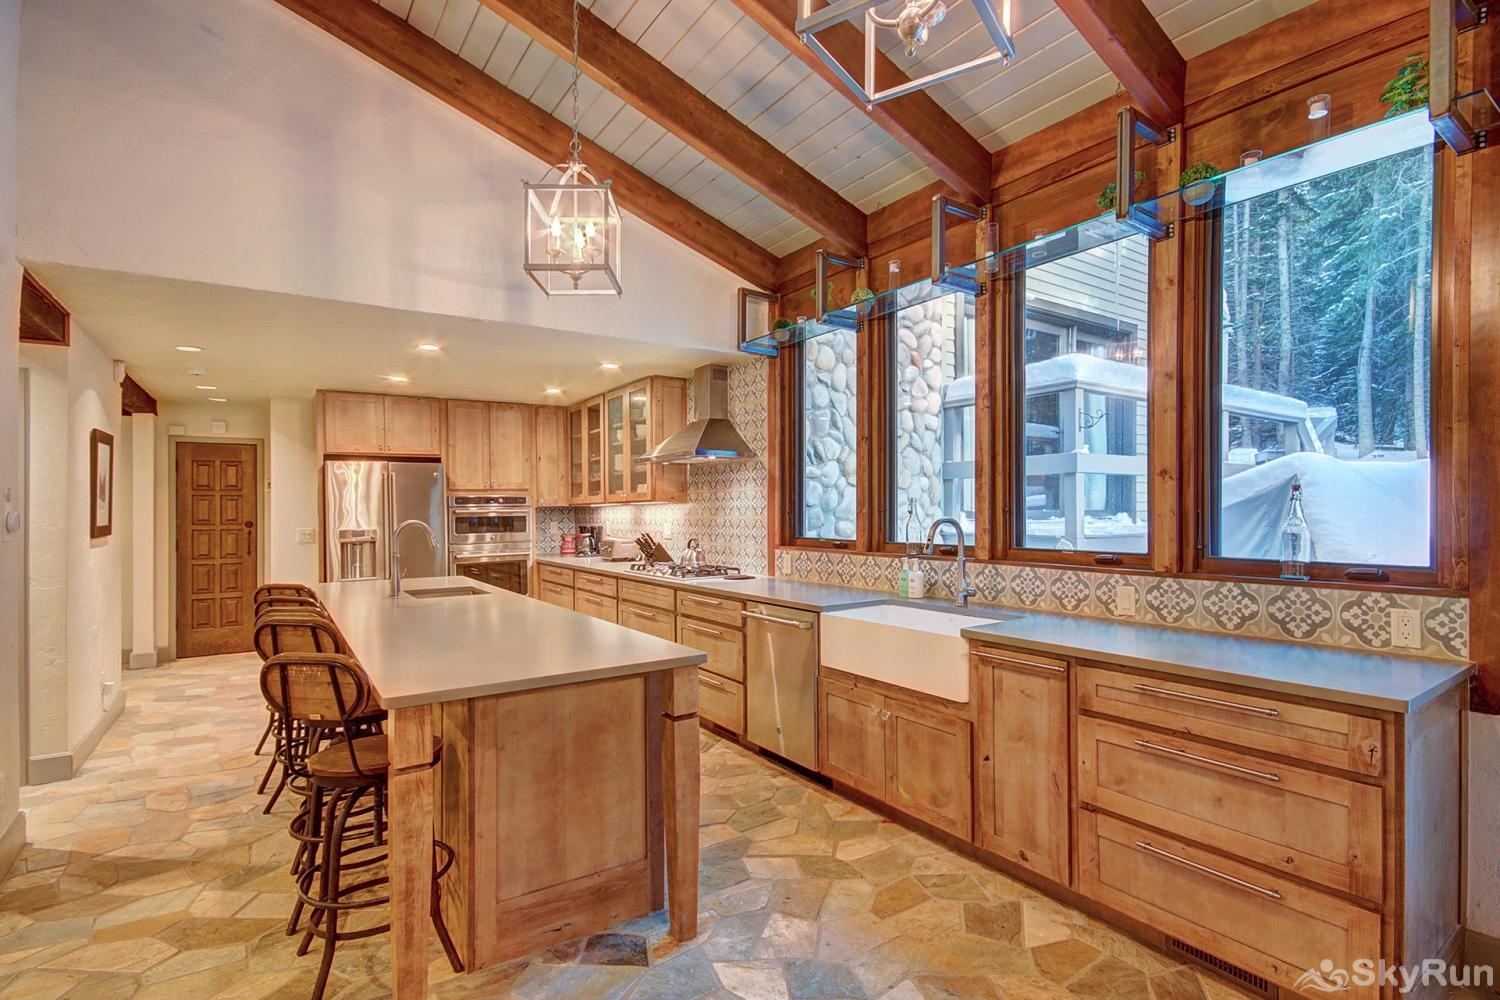 Creekside Chateau Large kitchen to prepare tasty home cooked meals